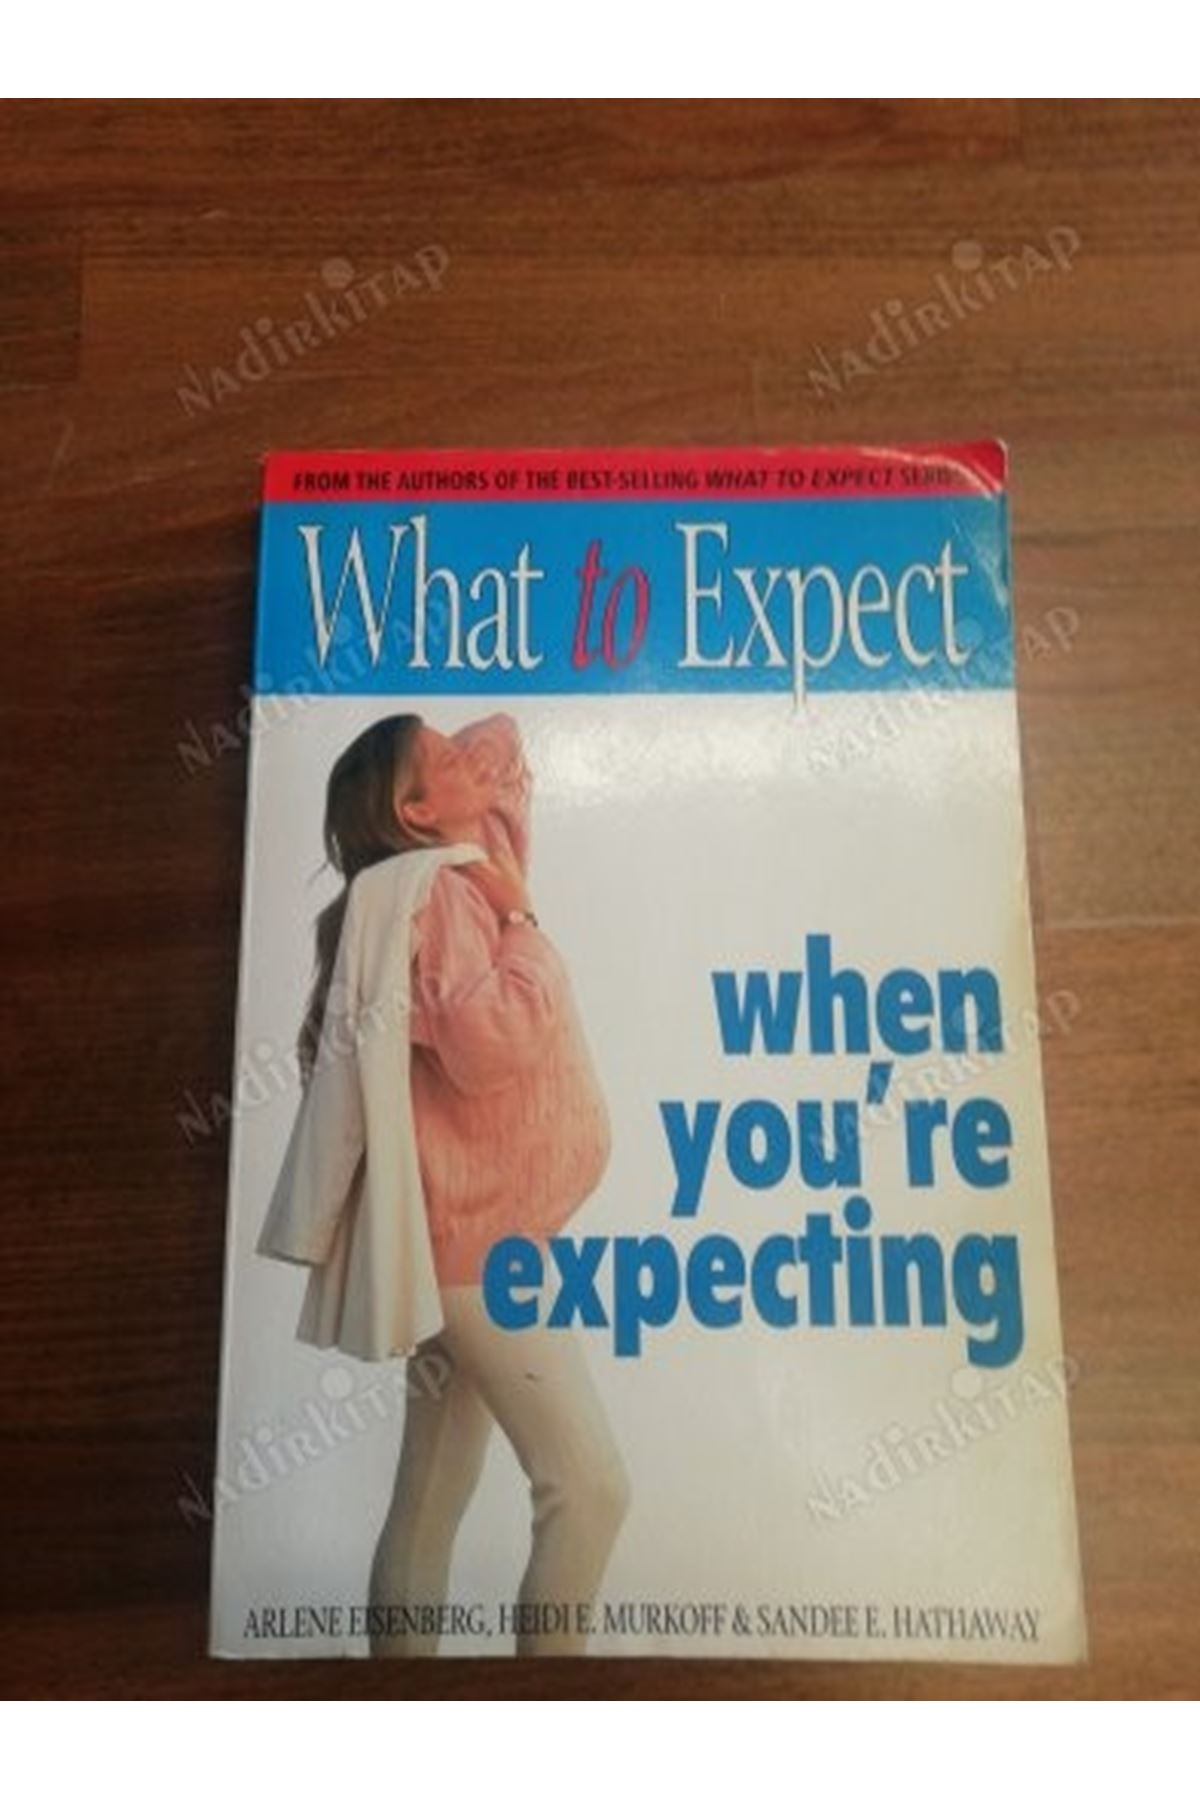 ARLENE EISENBERG - WHAT TO EXPECT WHEN YOU'RE EXPECTING